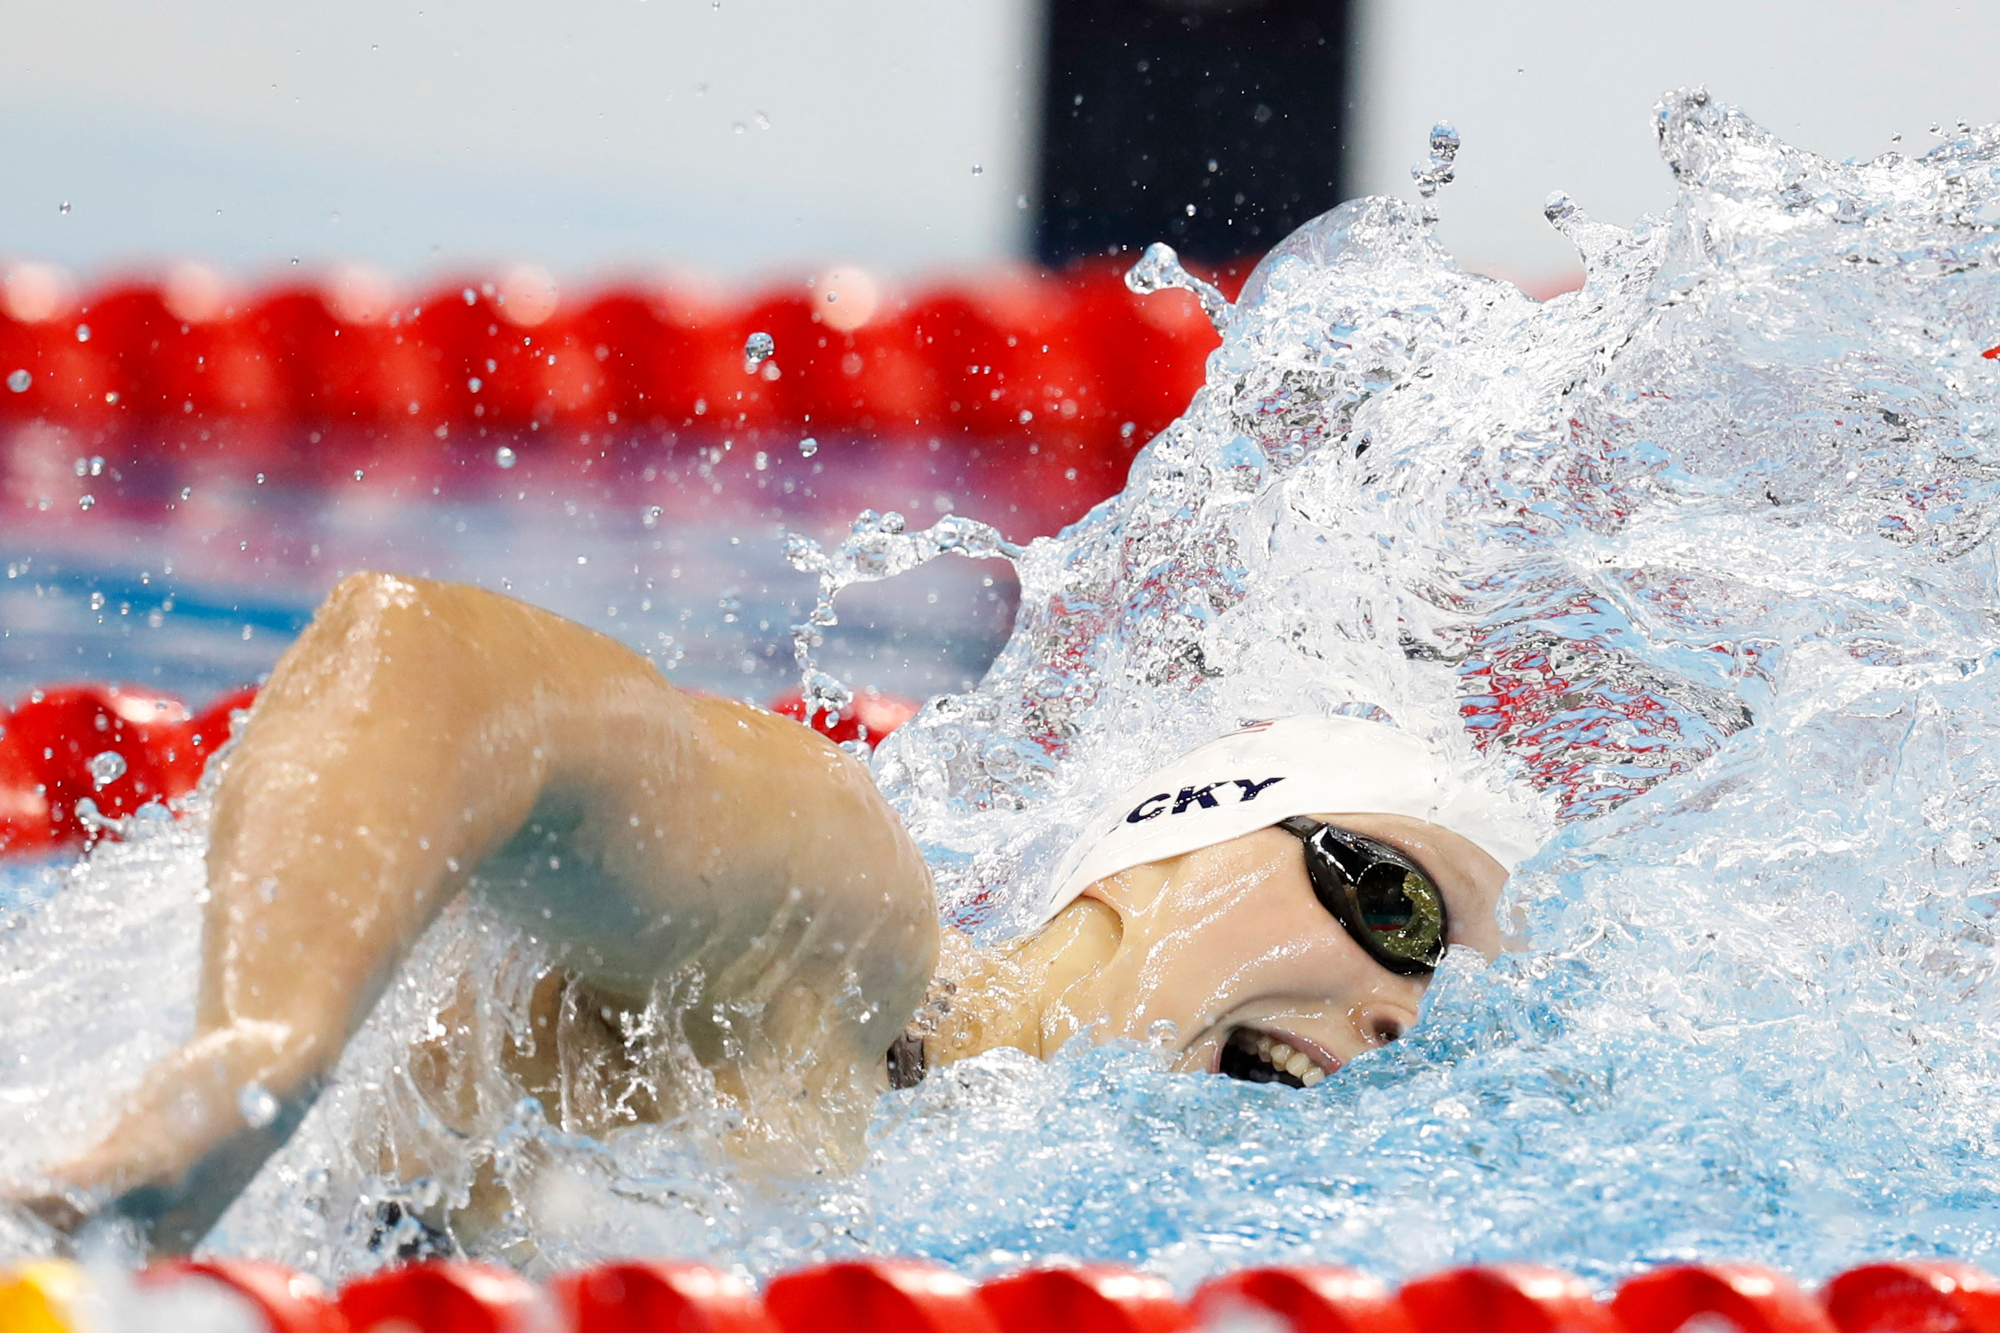 America's Katie Ledecky competes in the fifth heat of the Women's 200M Freestyle at the Olympic Aquatics Stadium at the 2016 Rio Summer Olympics in Rio de Janeiro, Brazil, on August 8, 2016. Ledecky finished first with a time of 1:55.01.